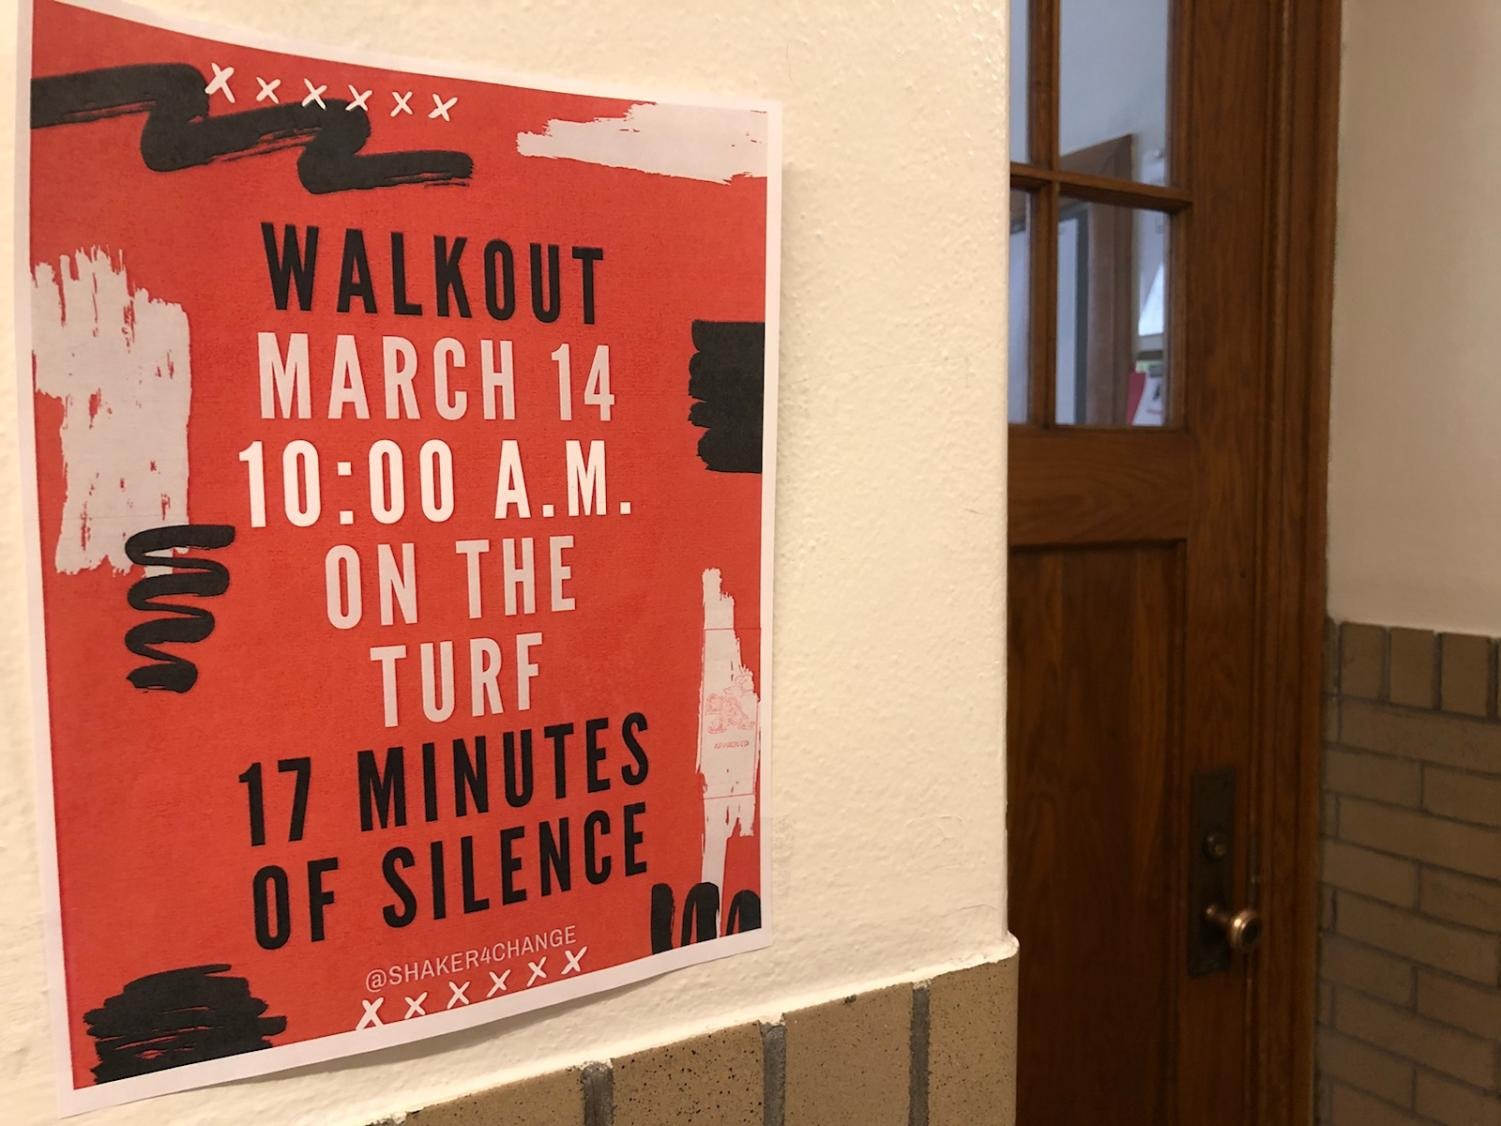 Posters hang throughout the high school advertising a student-led, student-organized walkout that will take place tomorrow at 10 a.m. Participating students will walk to the high school's turf field at Russell H. Rupp Stadium and observe 17 minutes of silence in memory of the 17 victims of the Feb. 14 Marjory Stoneman Douglas High School shooting.